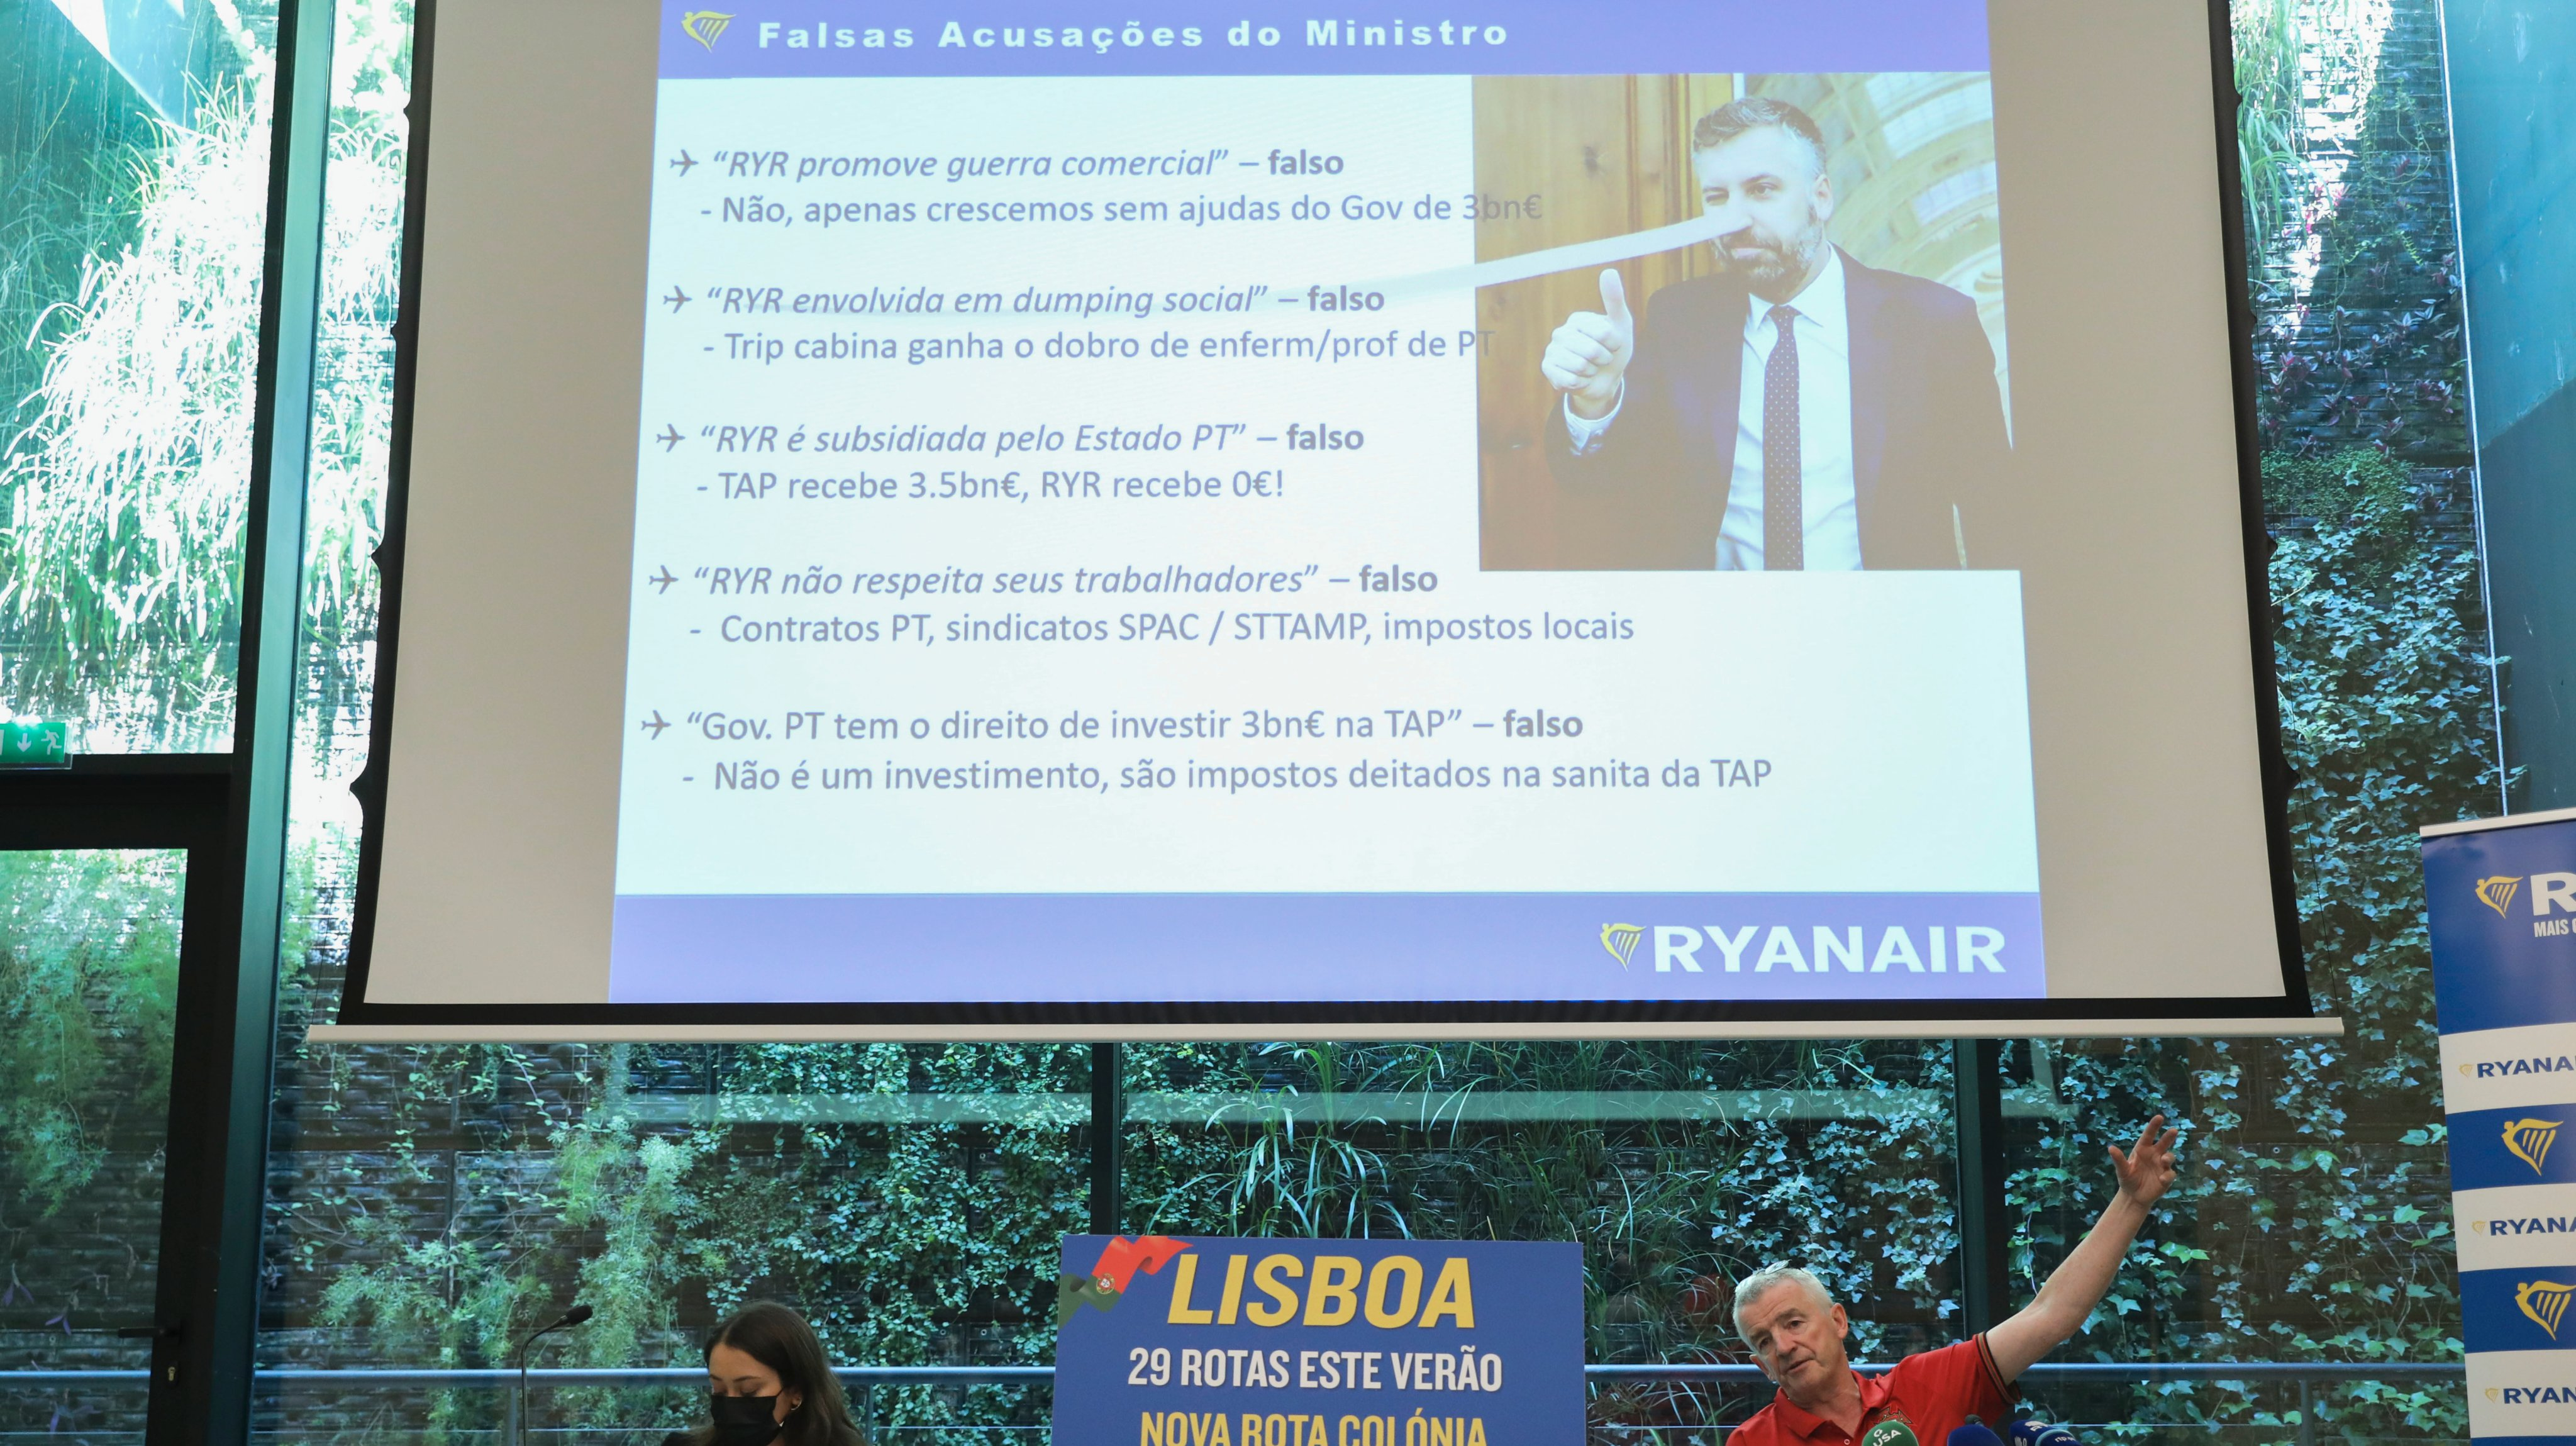 Ryanair CEO Michael O'Leary (R) attends a press conference of Ryanair Group this morning in Lisbon, Portugal,